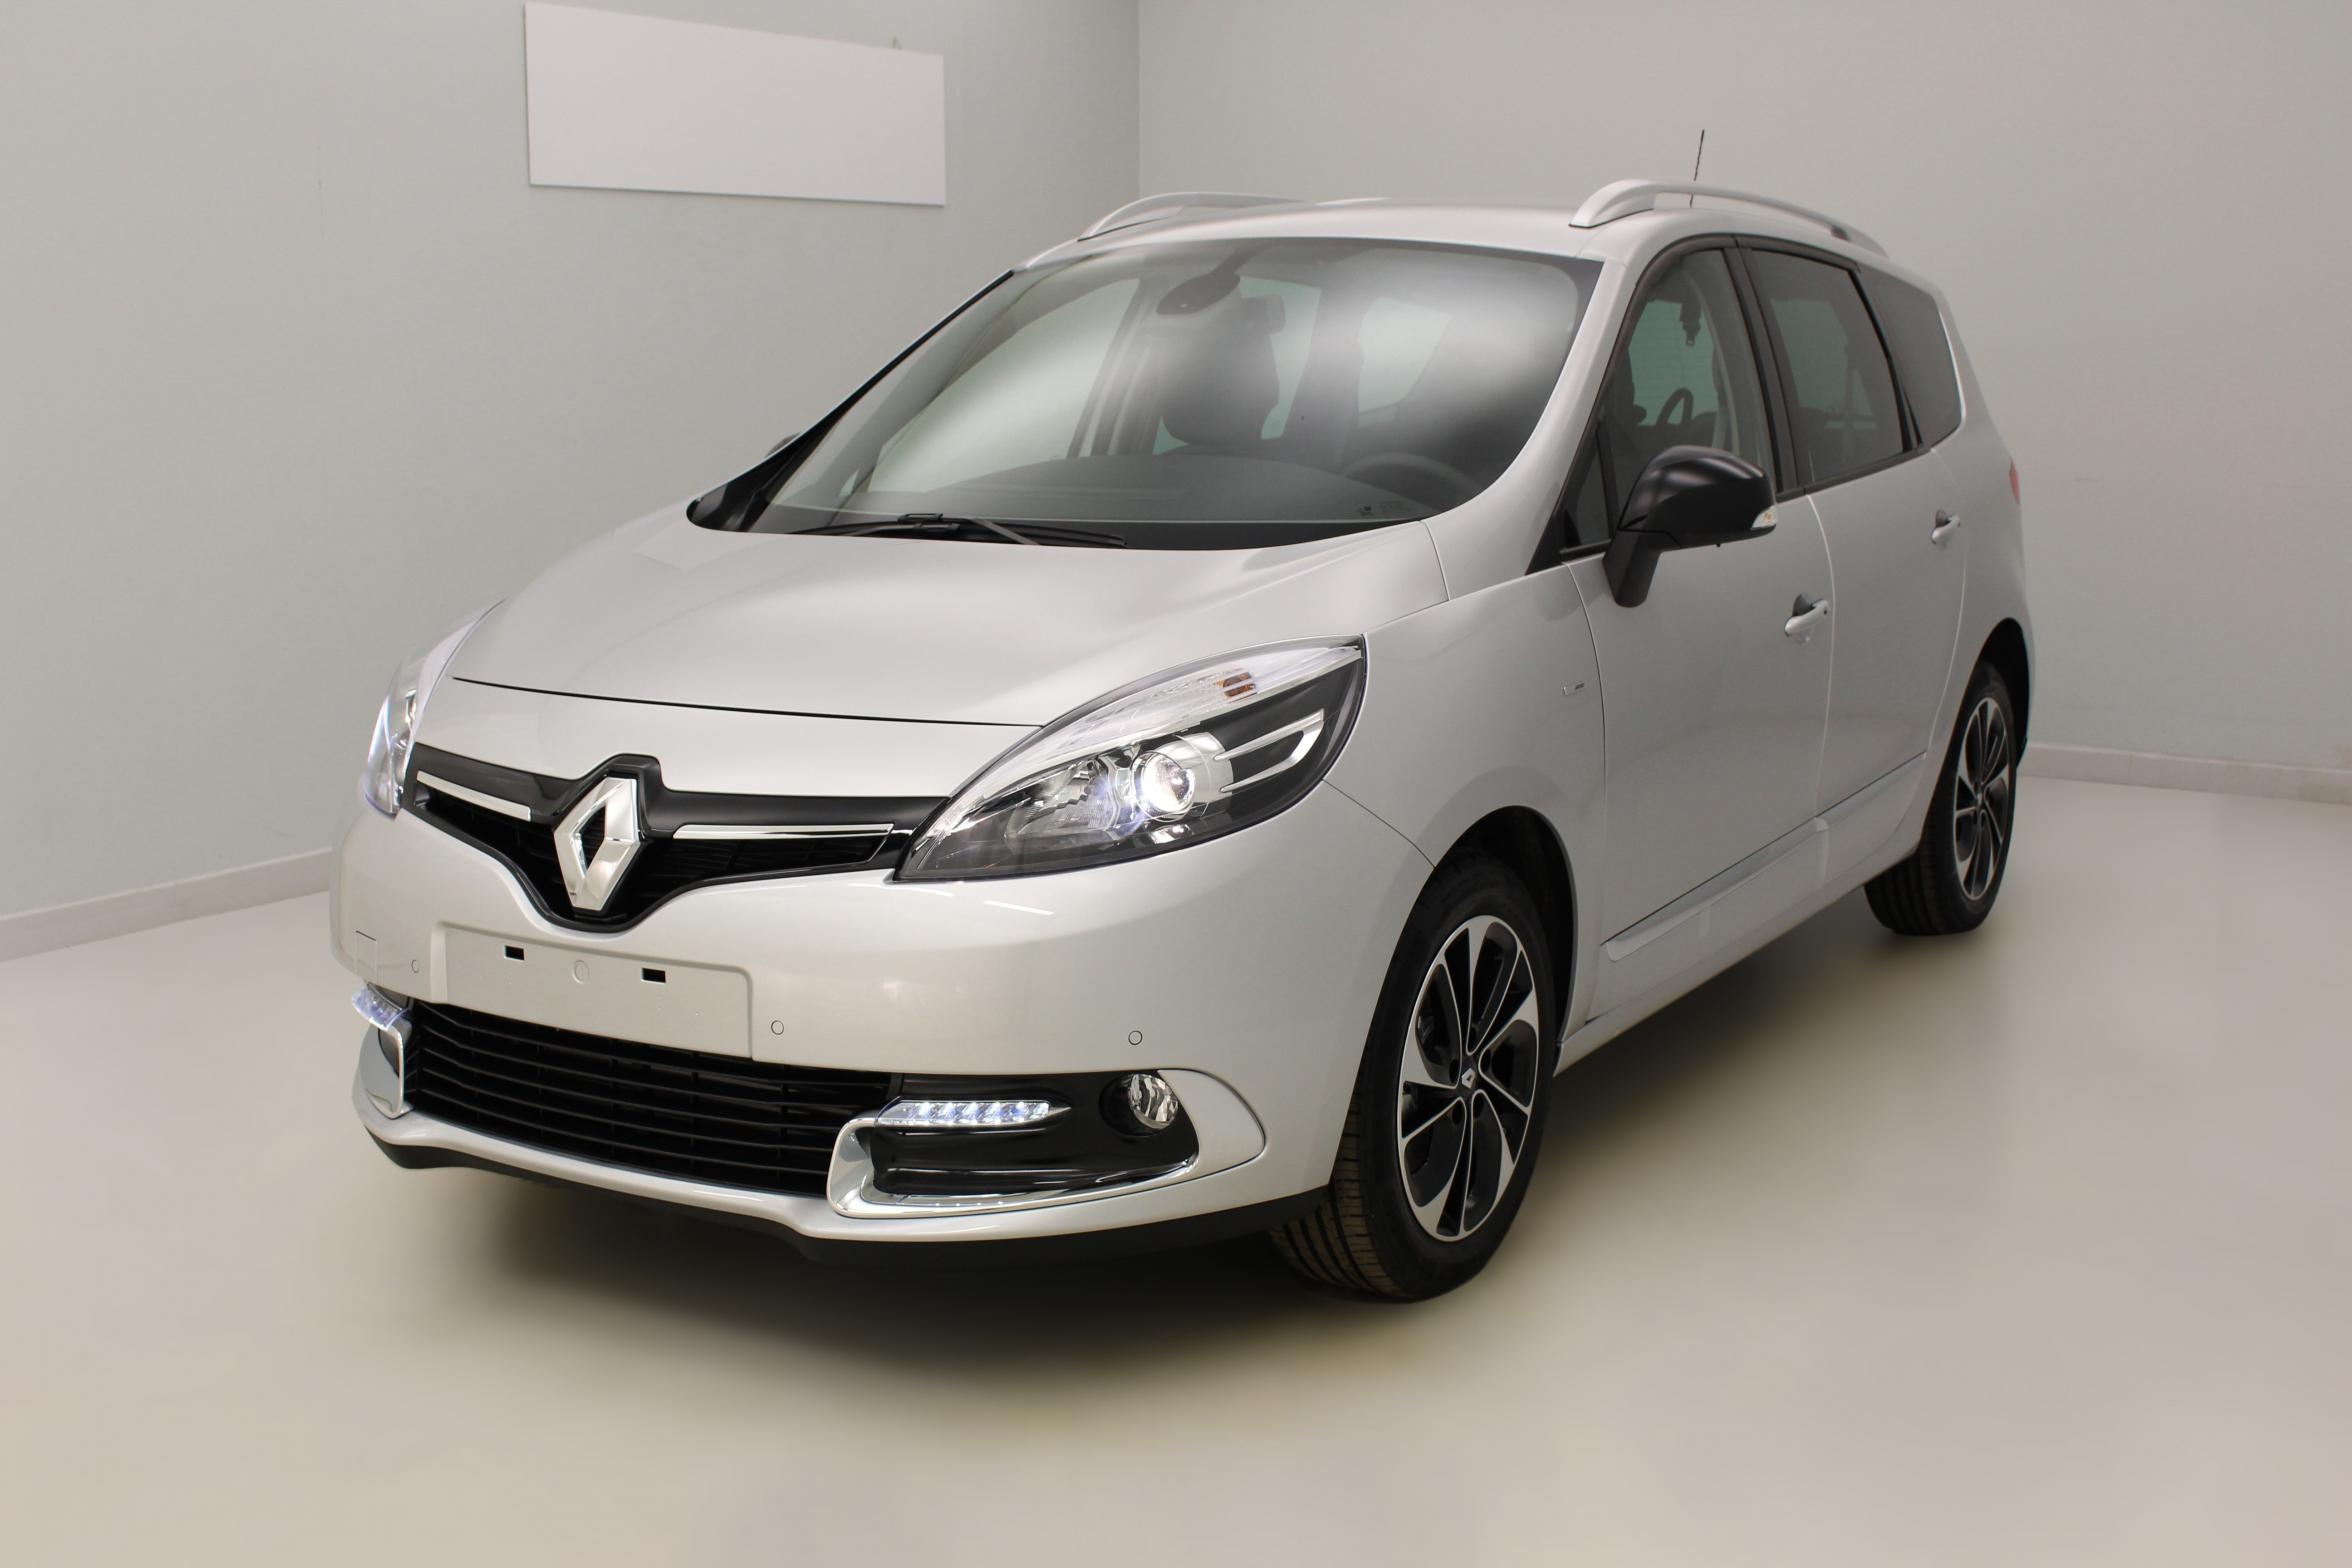 RENAULT Grand Scénic dCi 130 Energy Bose Edition 7 pl Gris Platine + Visio System avec options